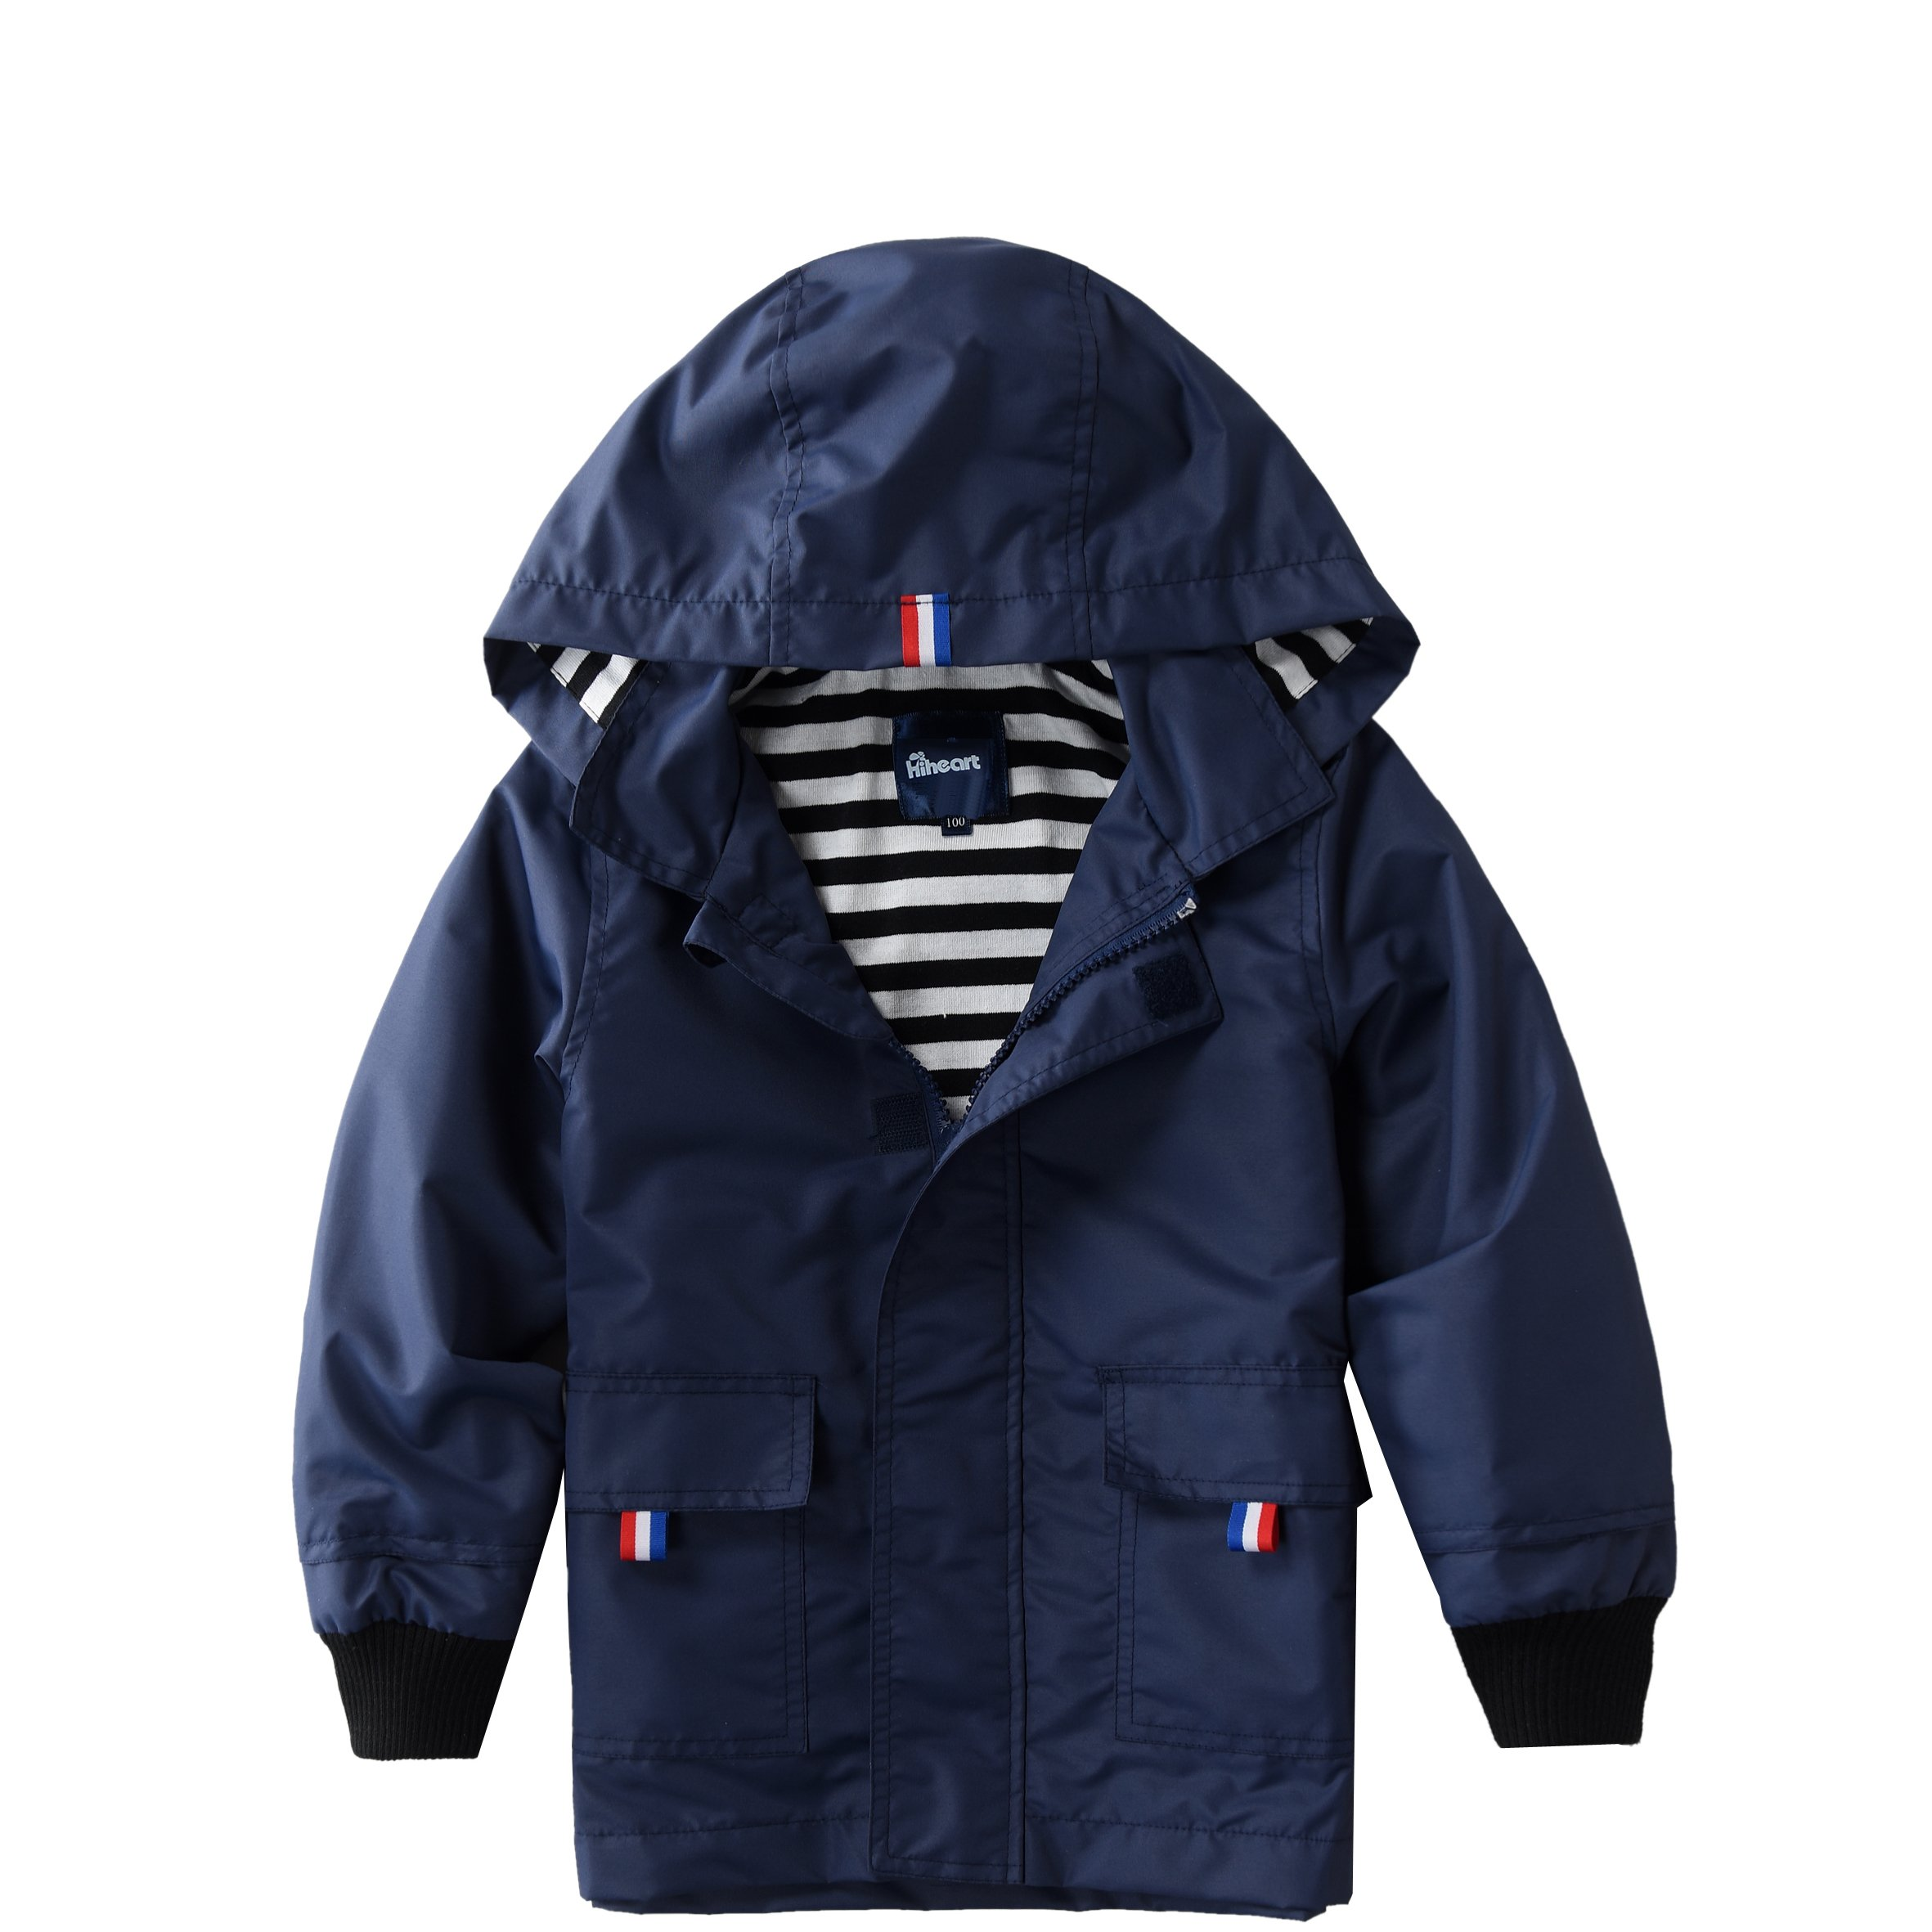 Hiheart Boys Waterproof Hooded Jackets Cotton Lined Rain Jackets Dark Navy 6/7